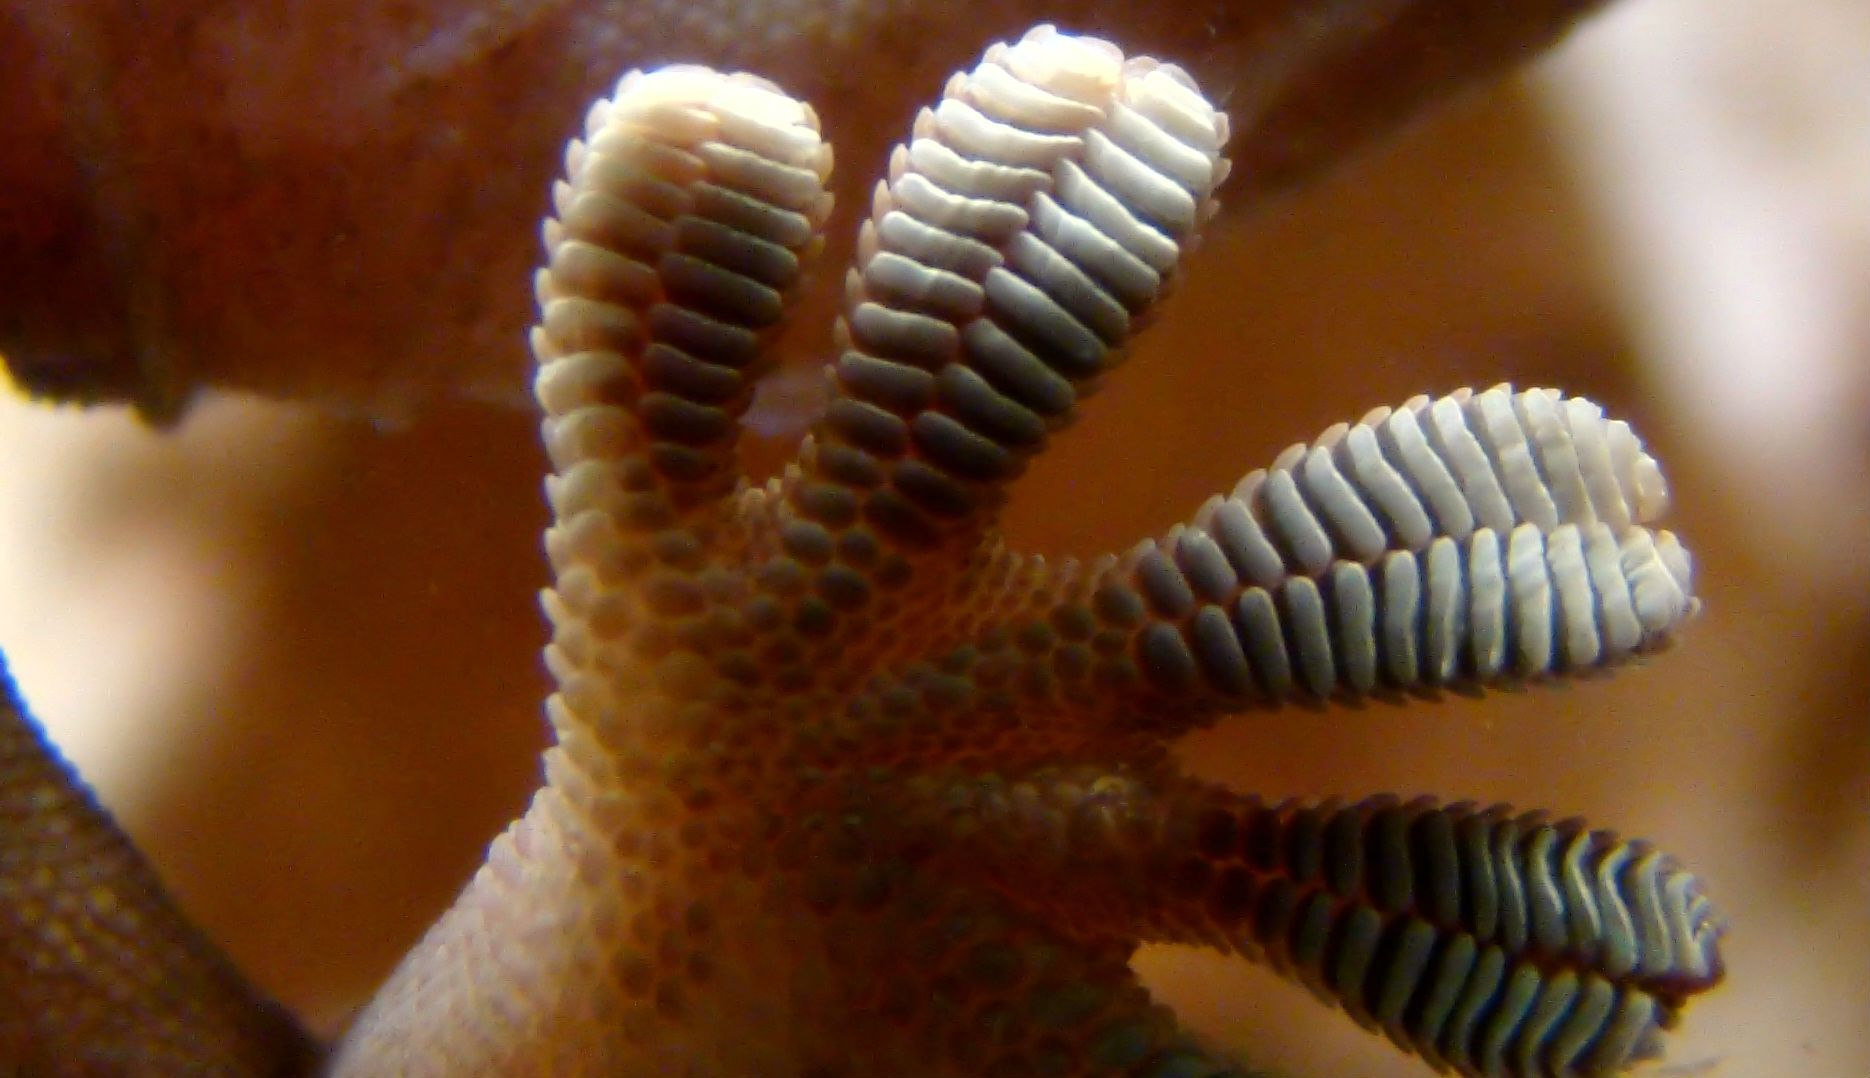 Gecko foot